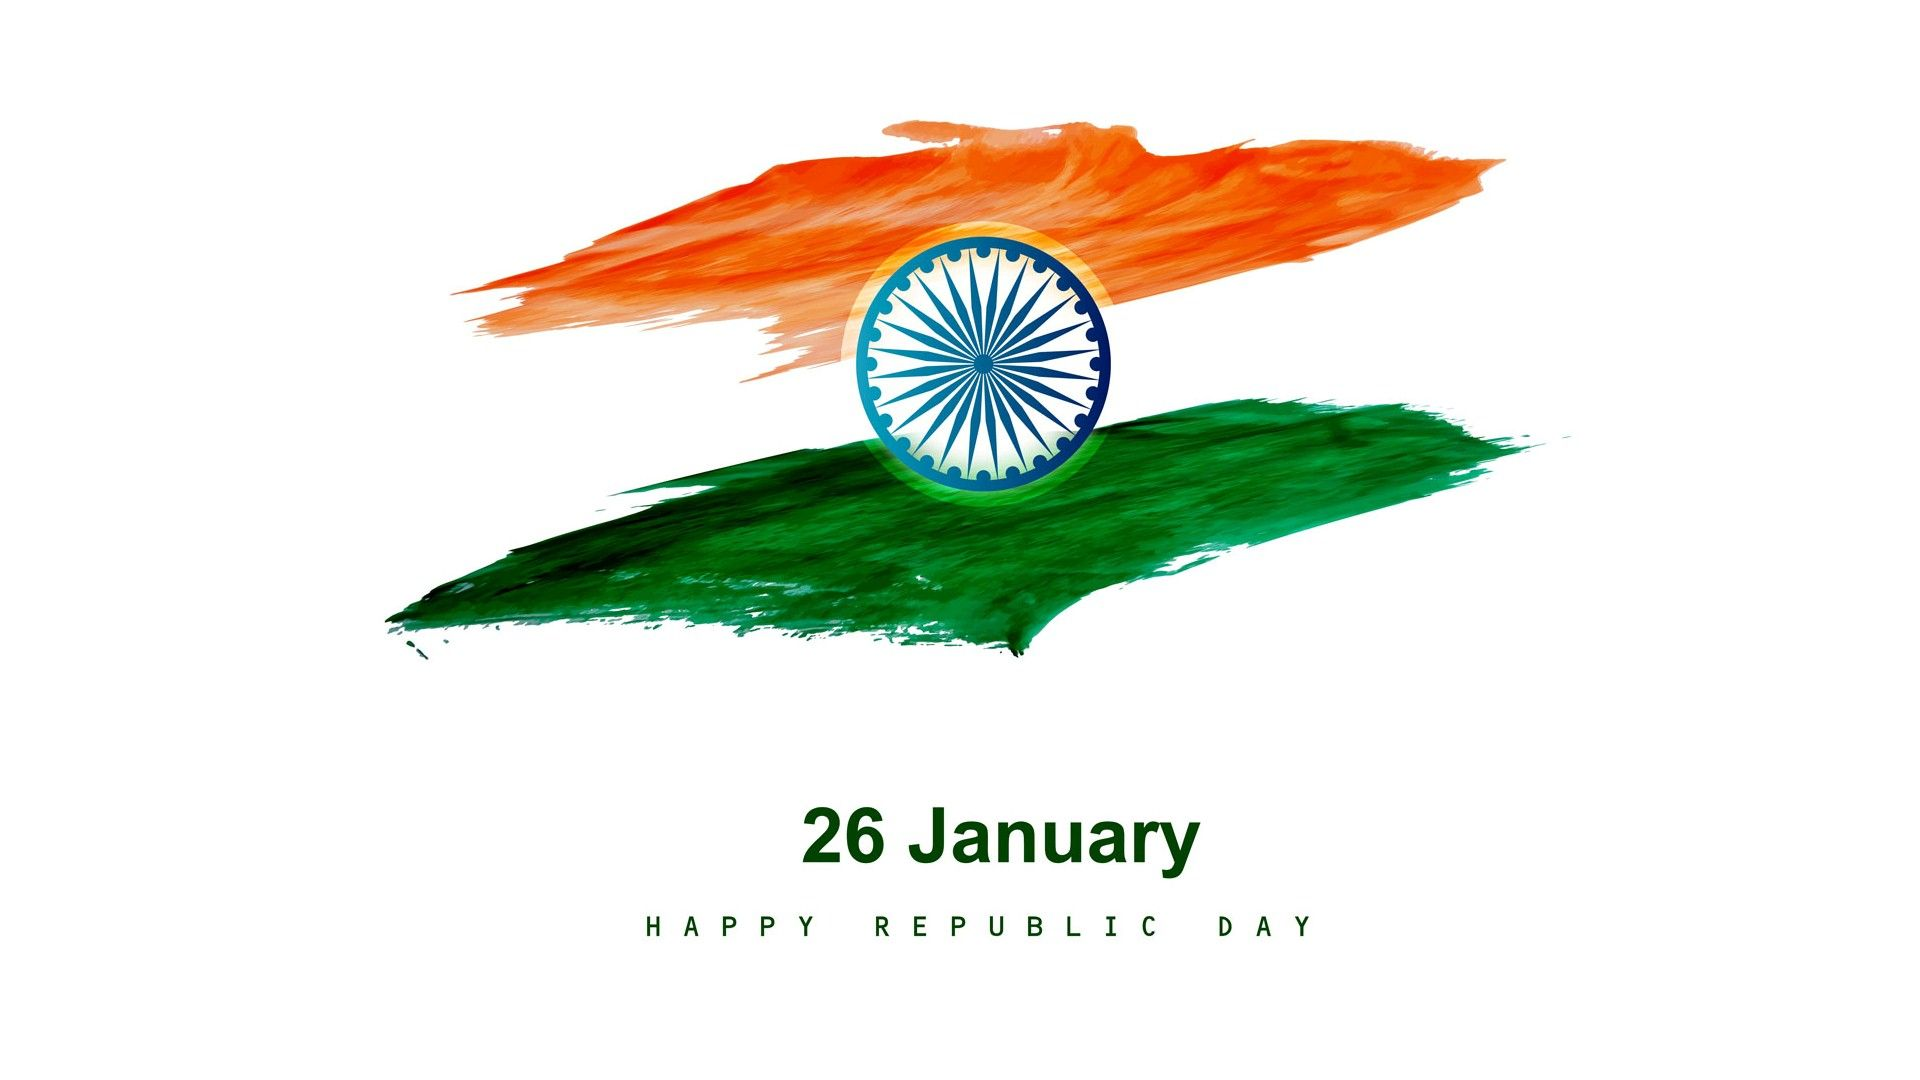 26 January 2019 Republic Day Images Wallpapers 26 January 2019 Facebook Status Instagram Stories 26 Republic Day Images Republic Day 2020 Republic Day